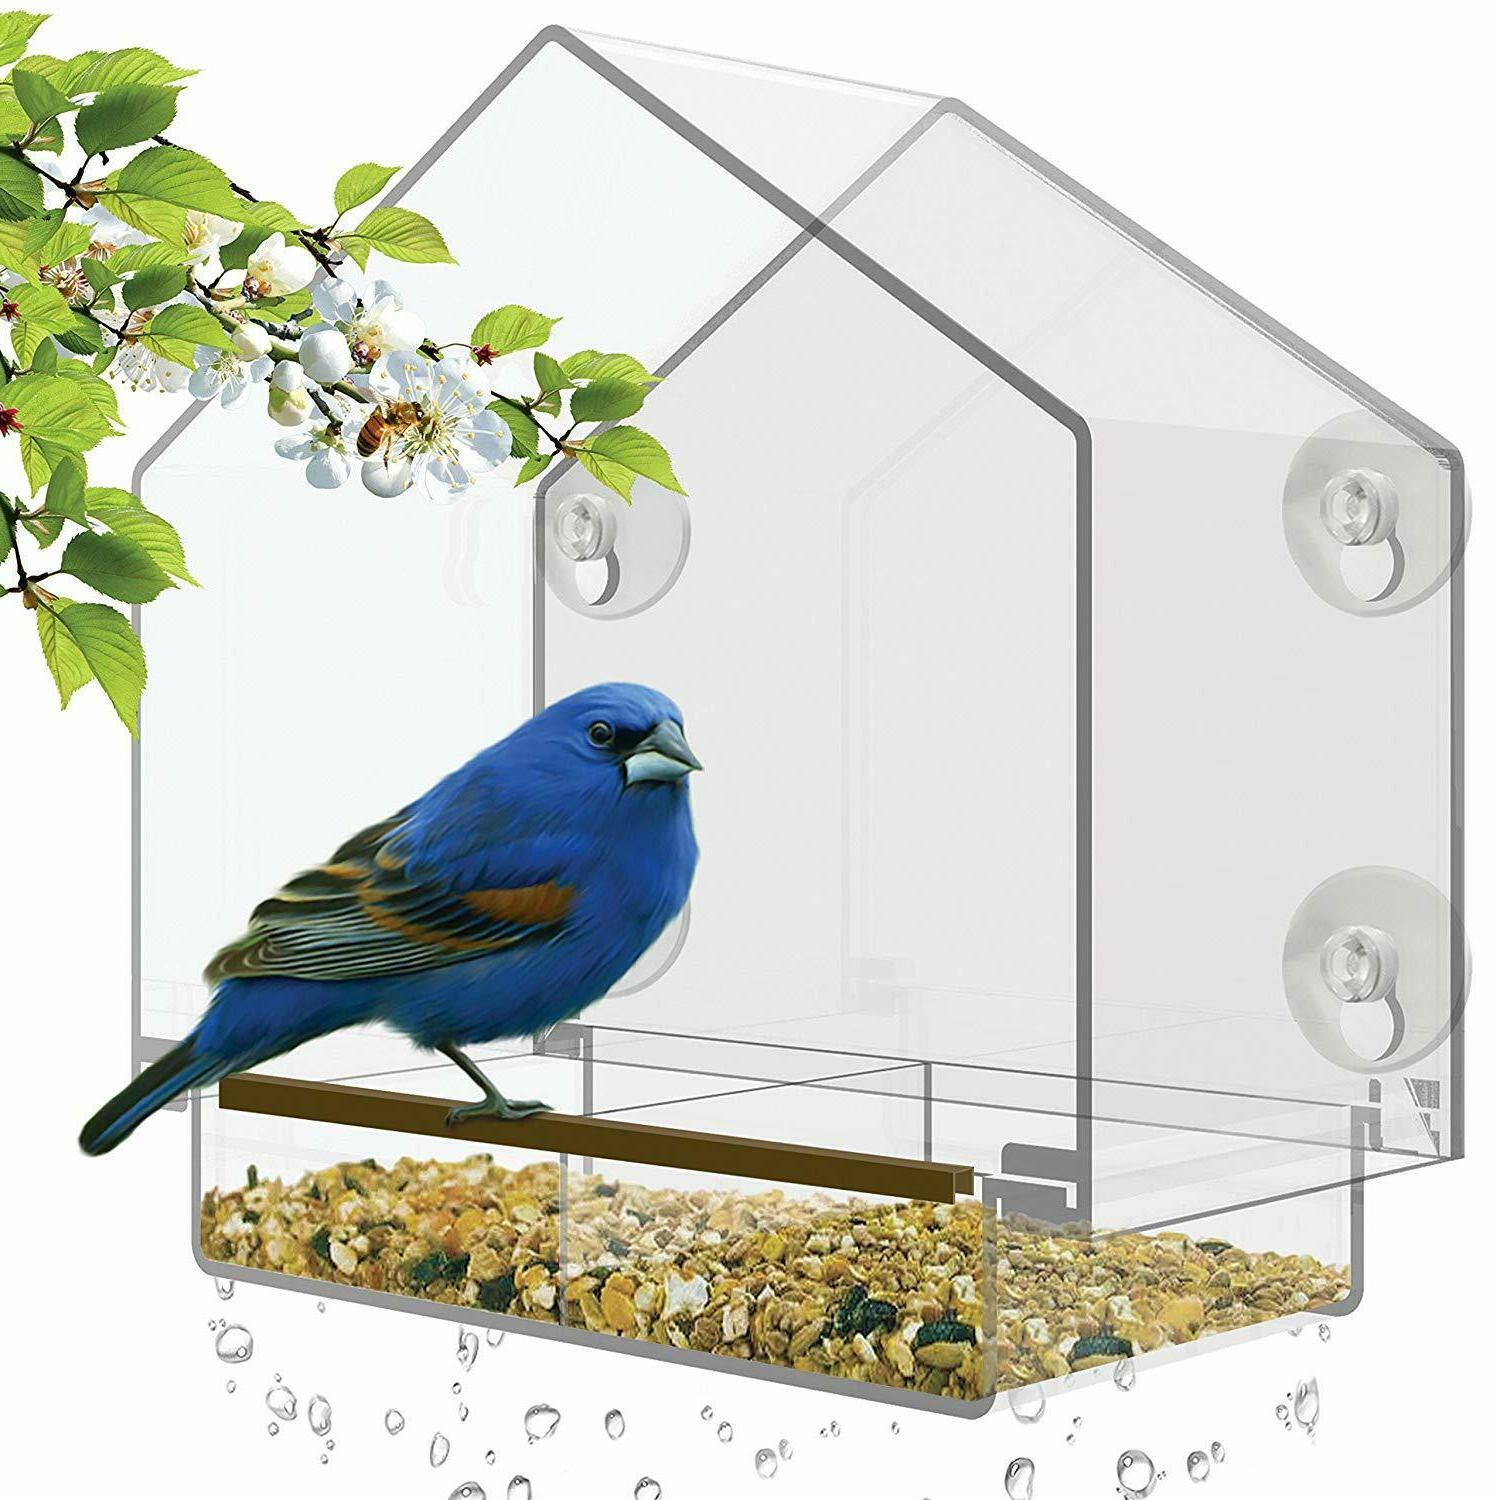 window bird feeder large bird house